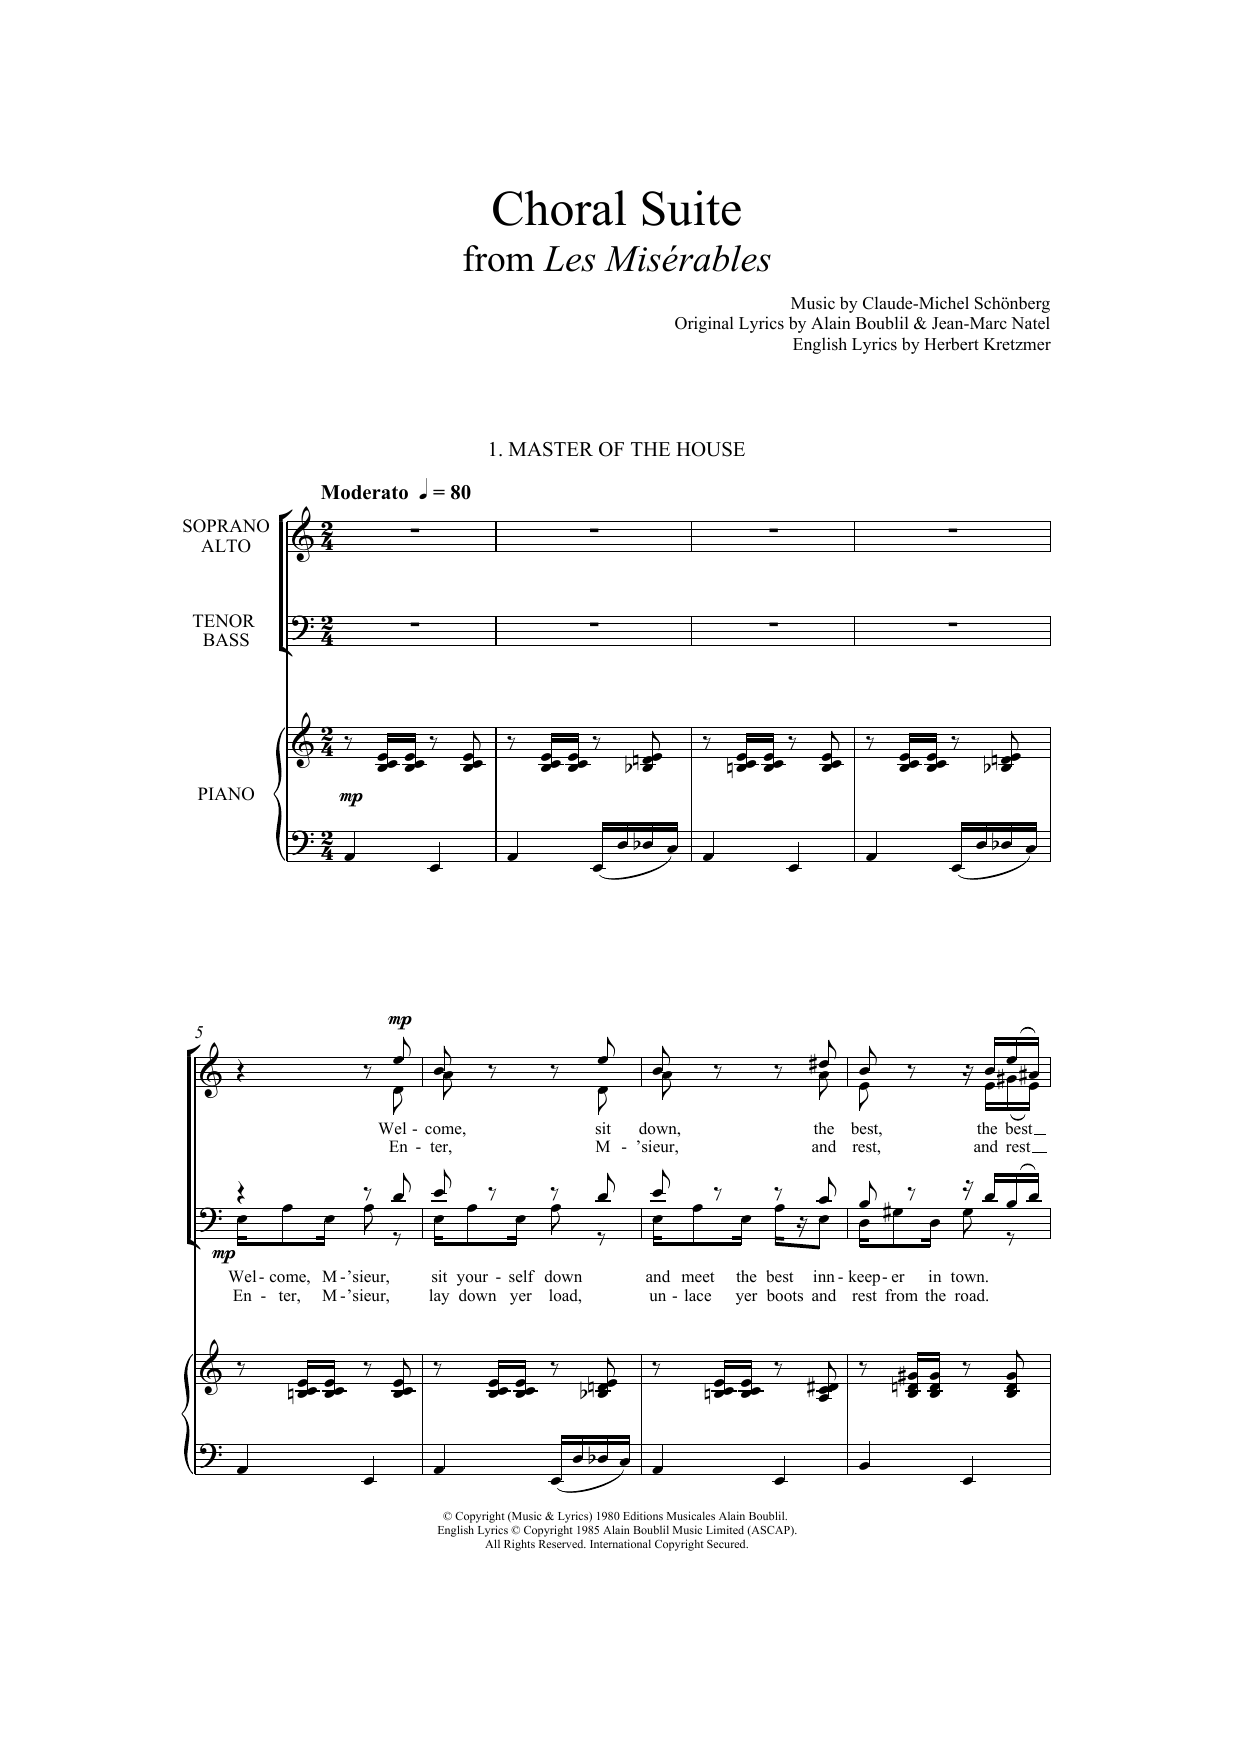 Boublil and Schonberg - Choral Suite From Les Miserables (arr. Francis Shaw)